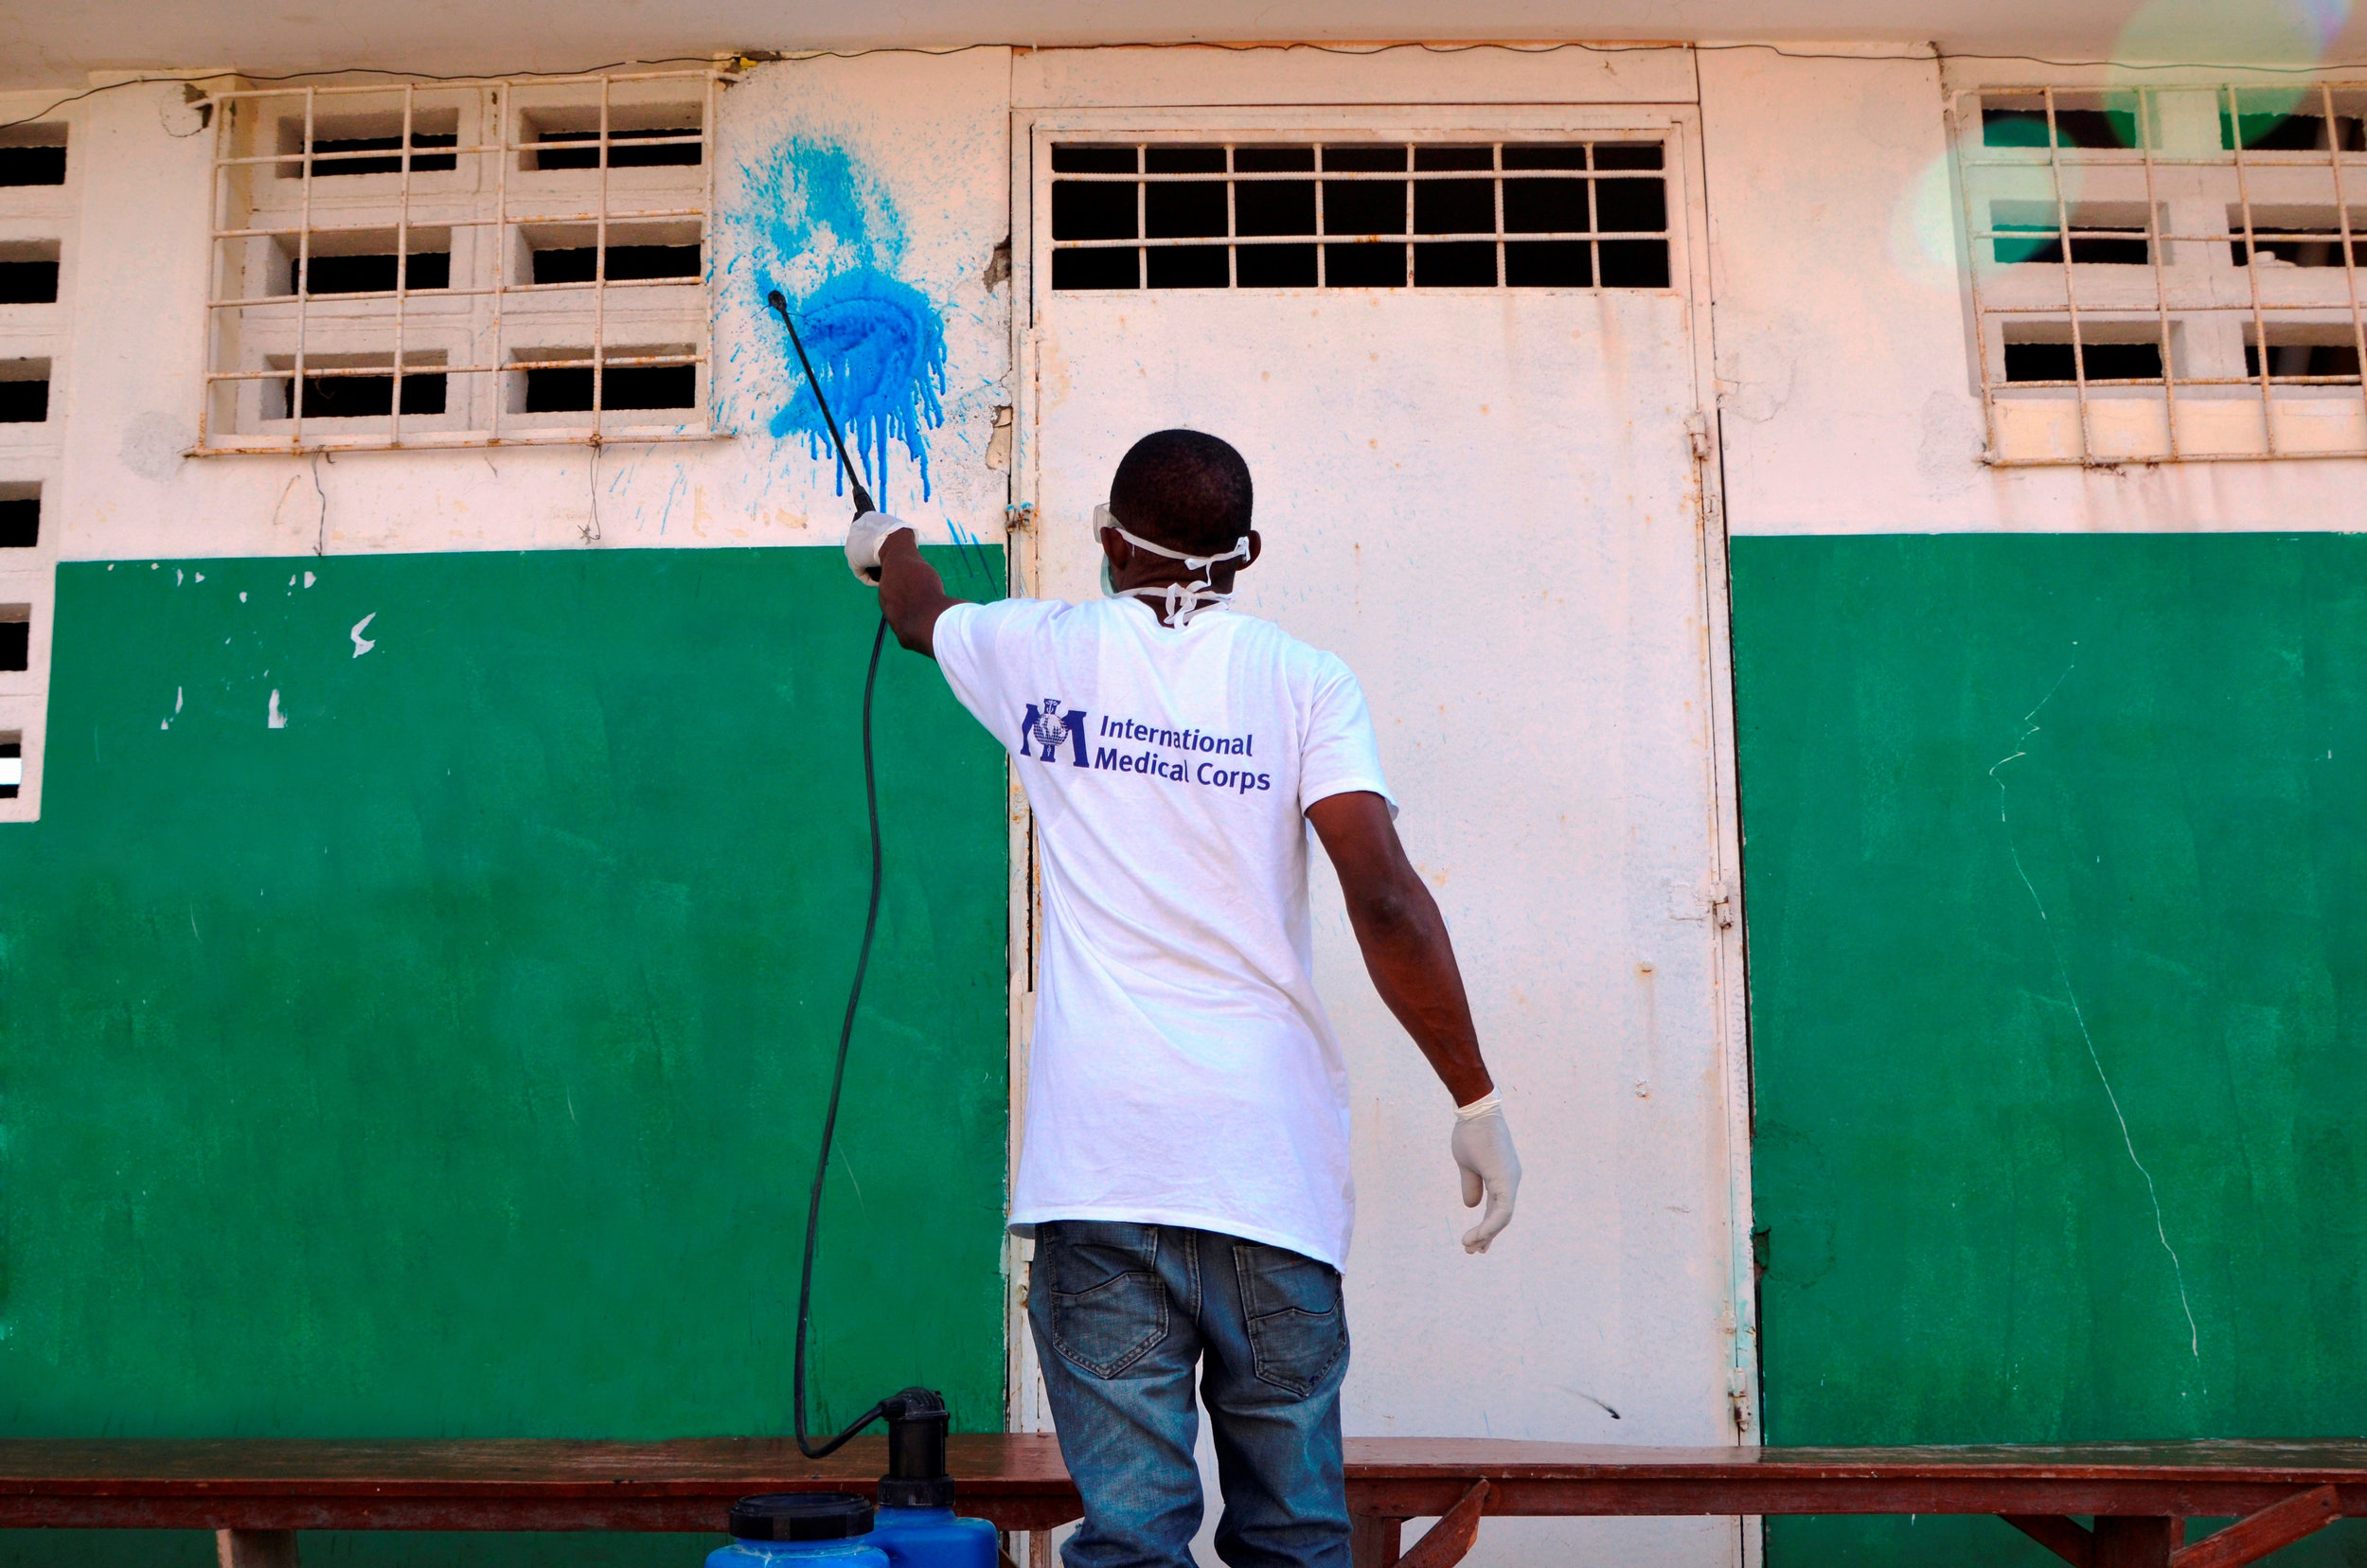 A healthcare worker sprays down a wall with Highlight at a Cholera Treatment Unit in Les Anglais, Haiti. (February 2017). © 2017 International Medical Corps. Photograph by Laura Stana.